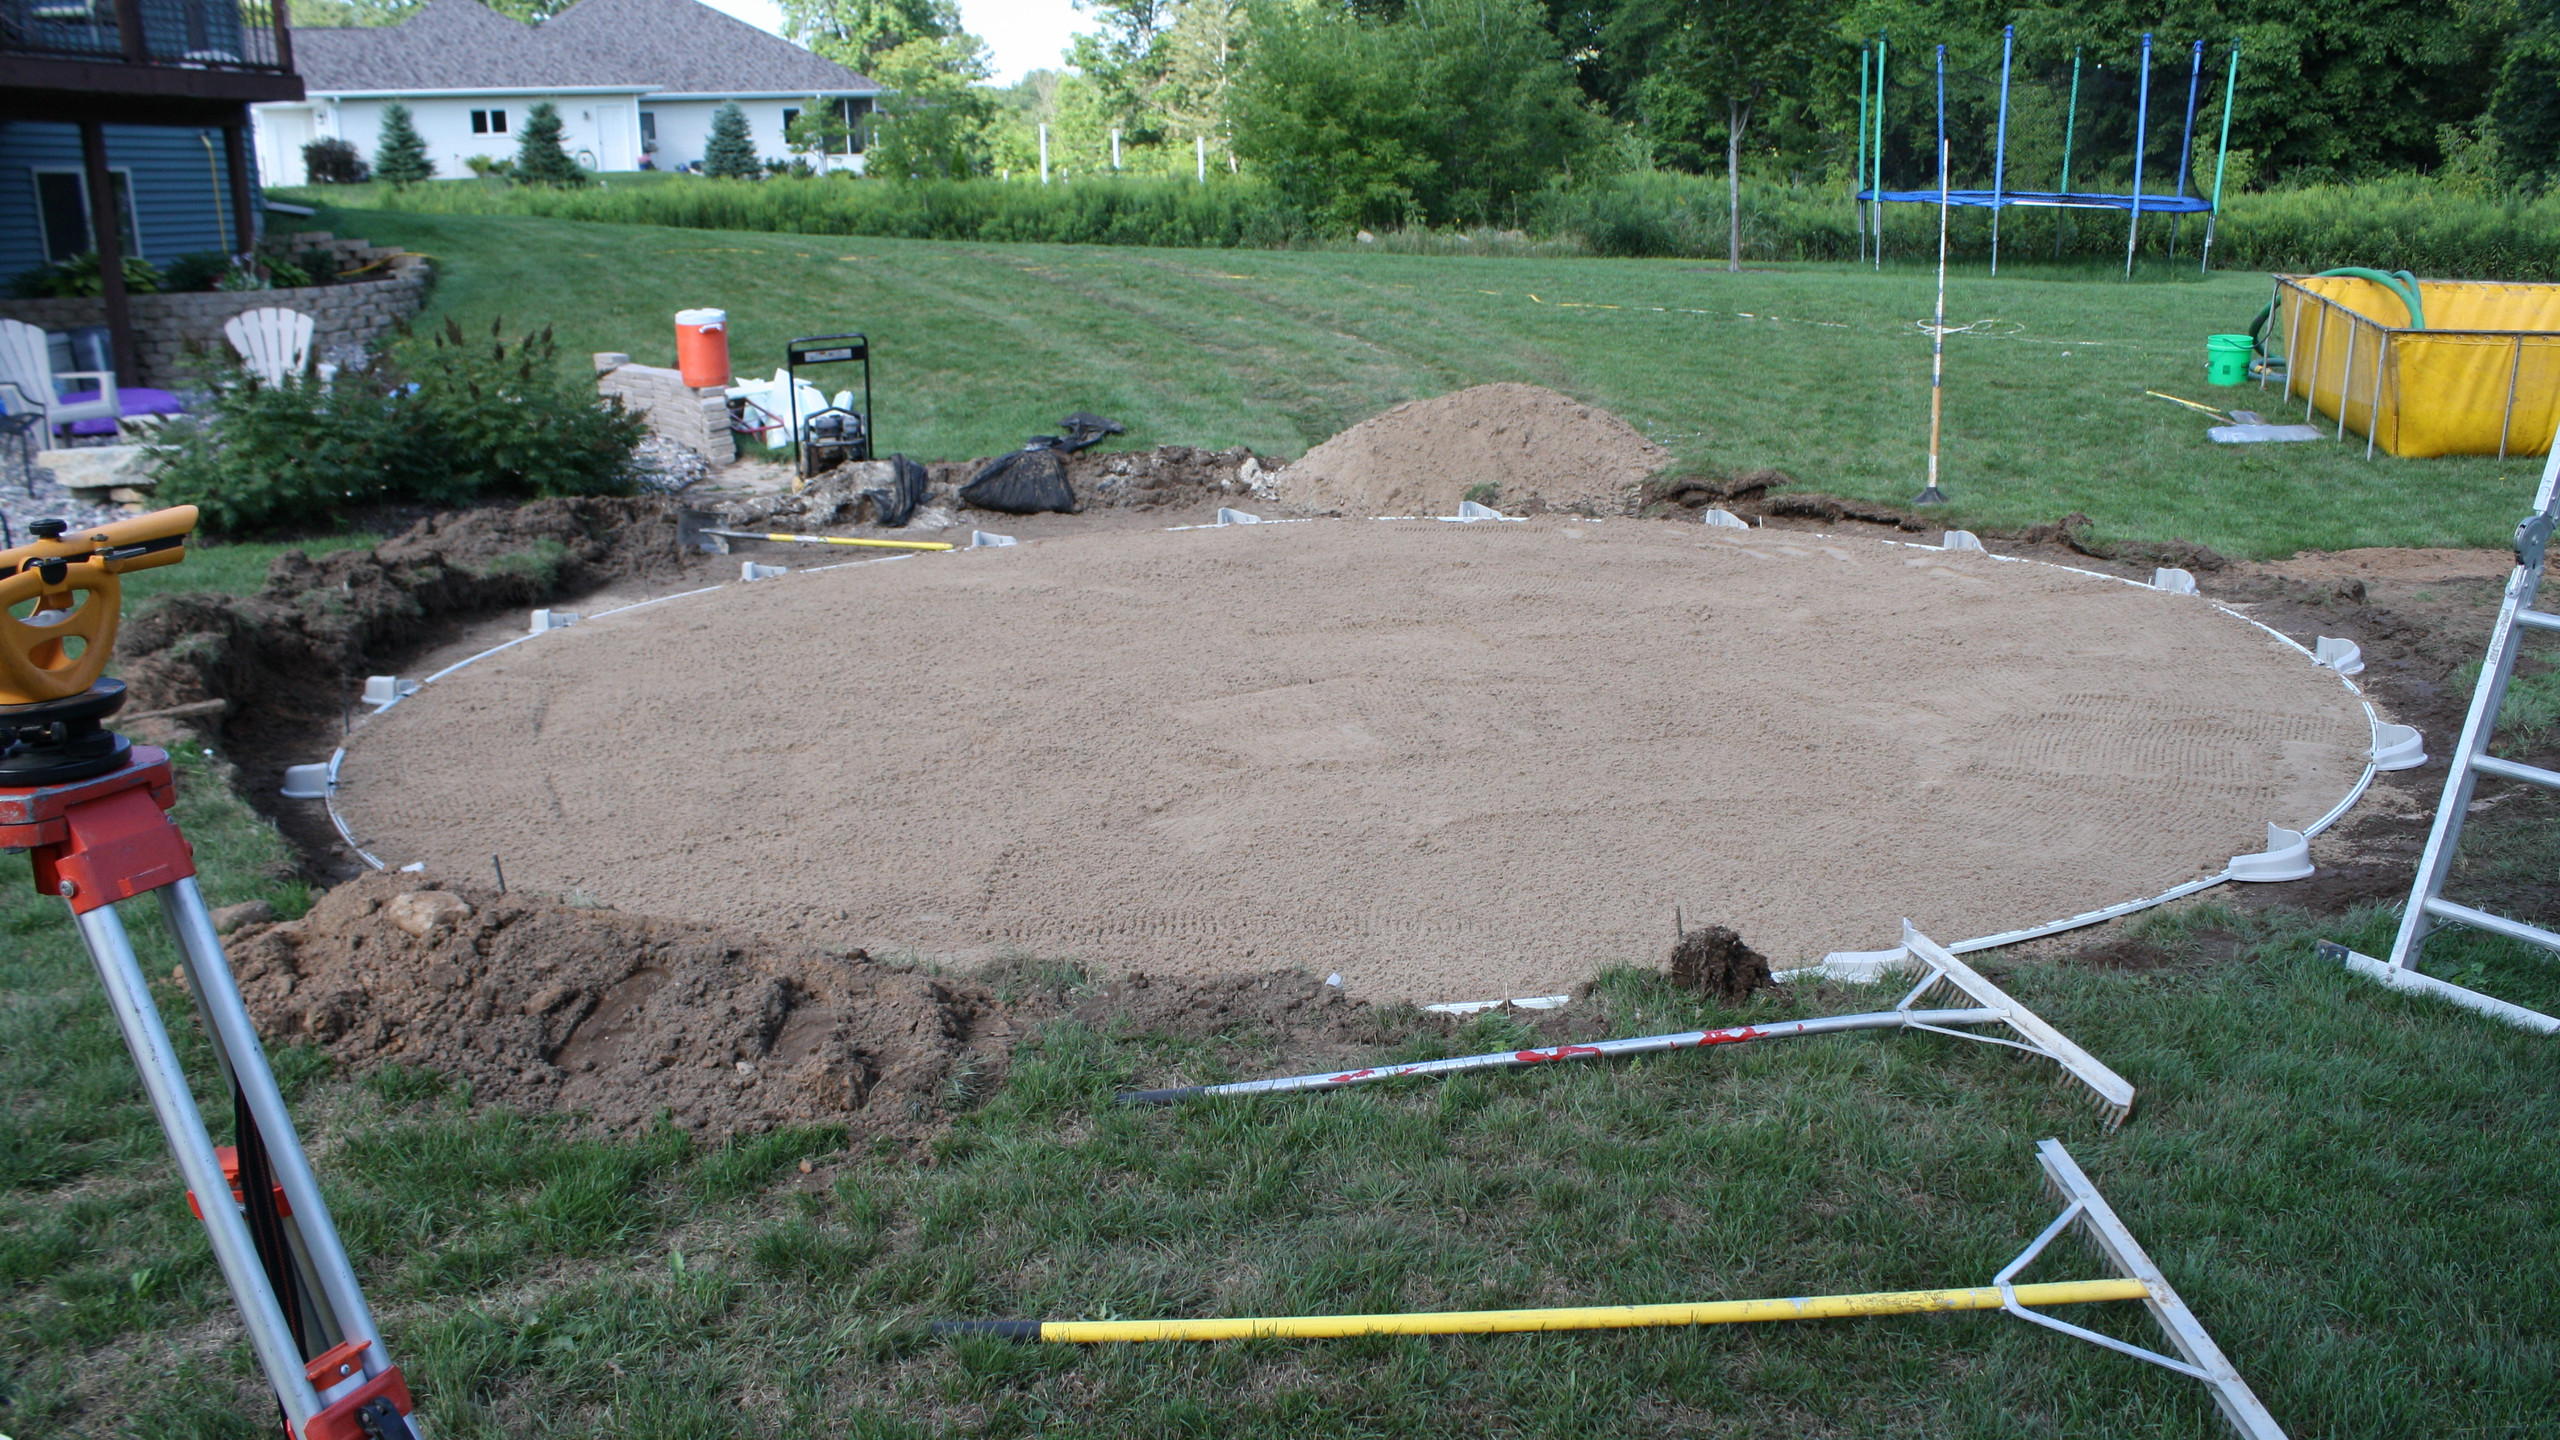 Now that we unloaded the sand we now place the sand inside the bottom track and rake to a uniform thickness.